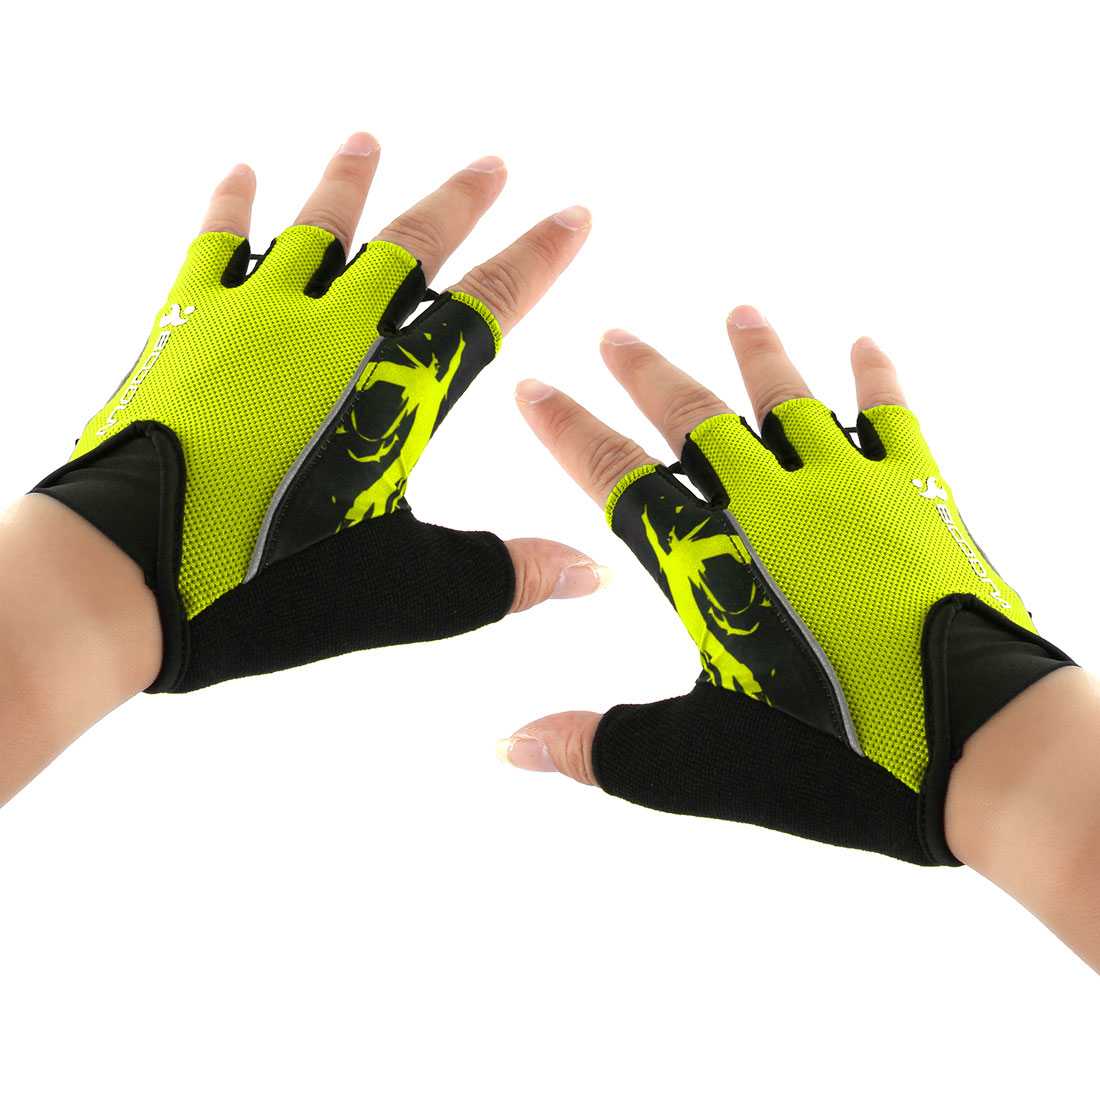 Polyester Exercise Sports Weightlifting Training Workout Protector Half Finger Fitness Gloves Fluorescent Green L Pair